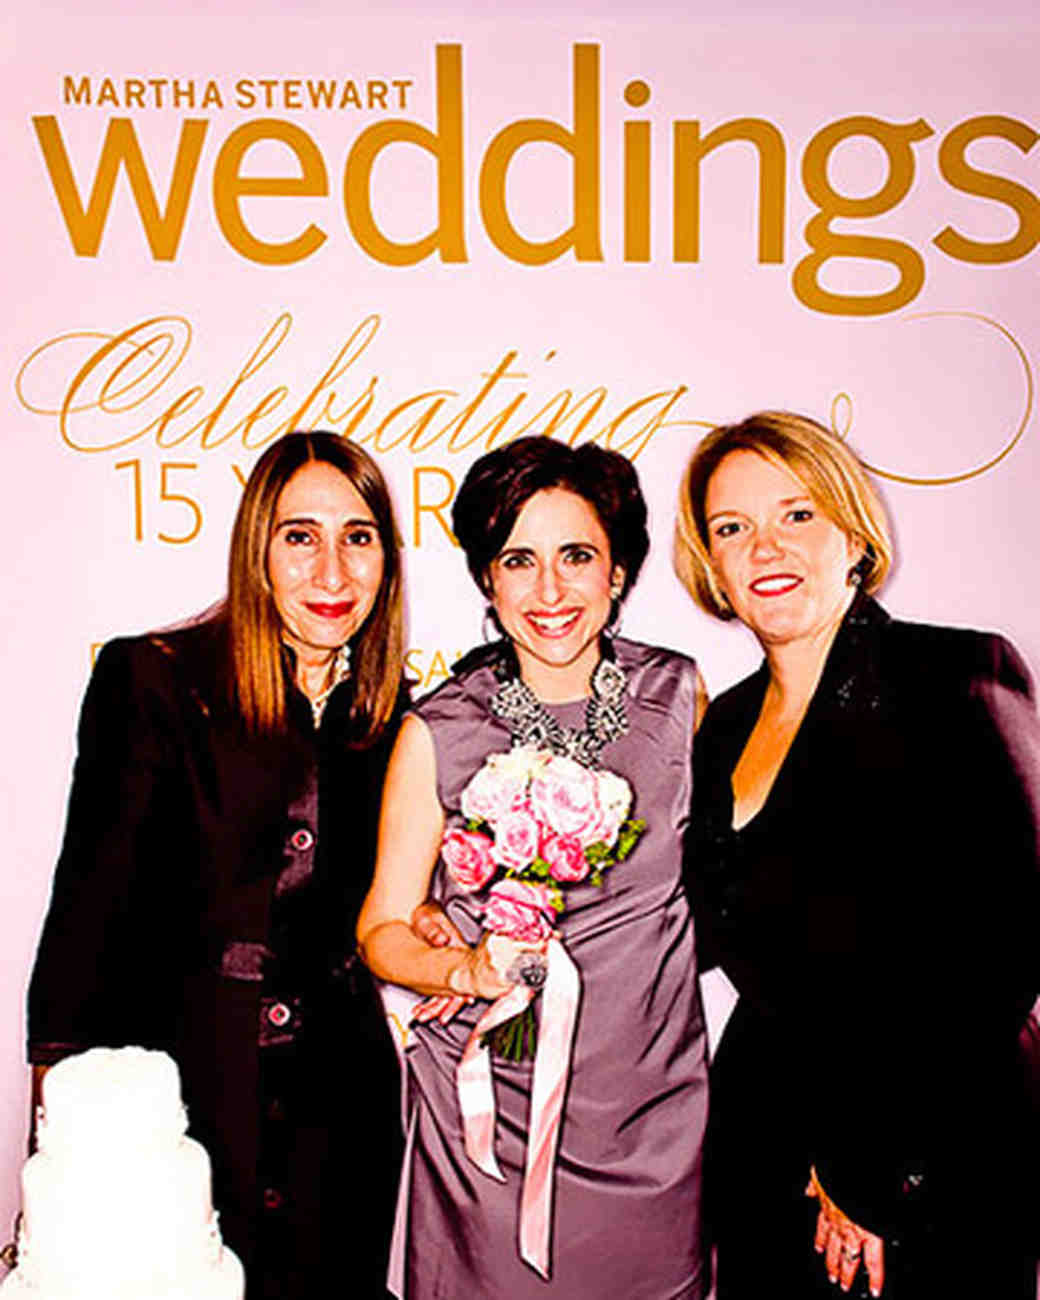 msw_15party_denise_silverberg_darcy_amy.jpg